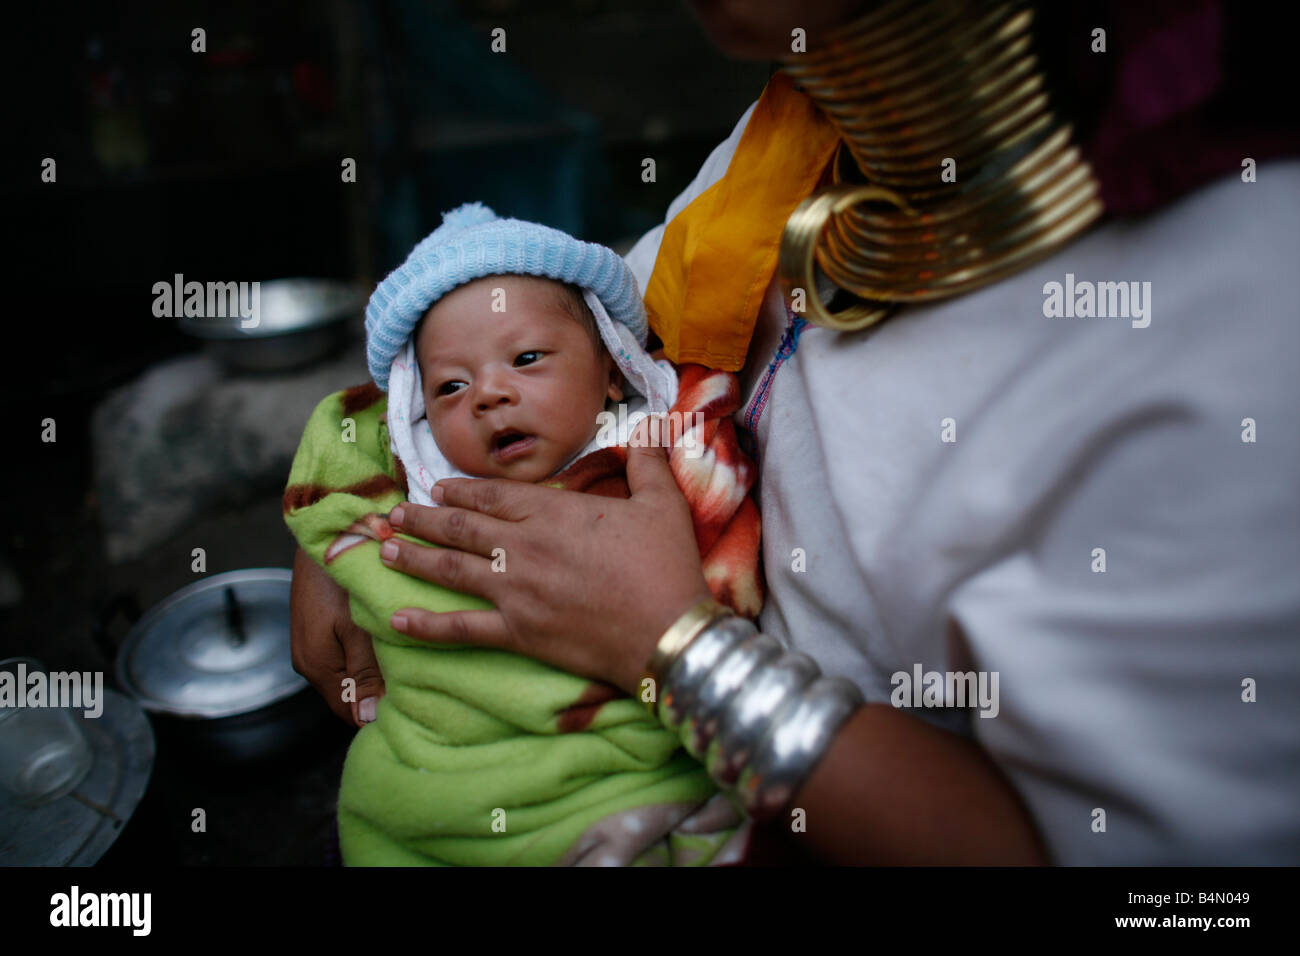 Closeup of a Longneck baby being held by its mother Approximately 300 Burmese refugees in Thailand are members of - Stock Image